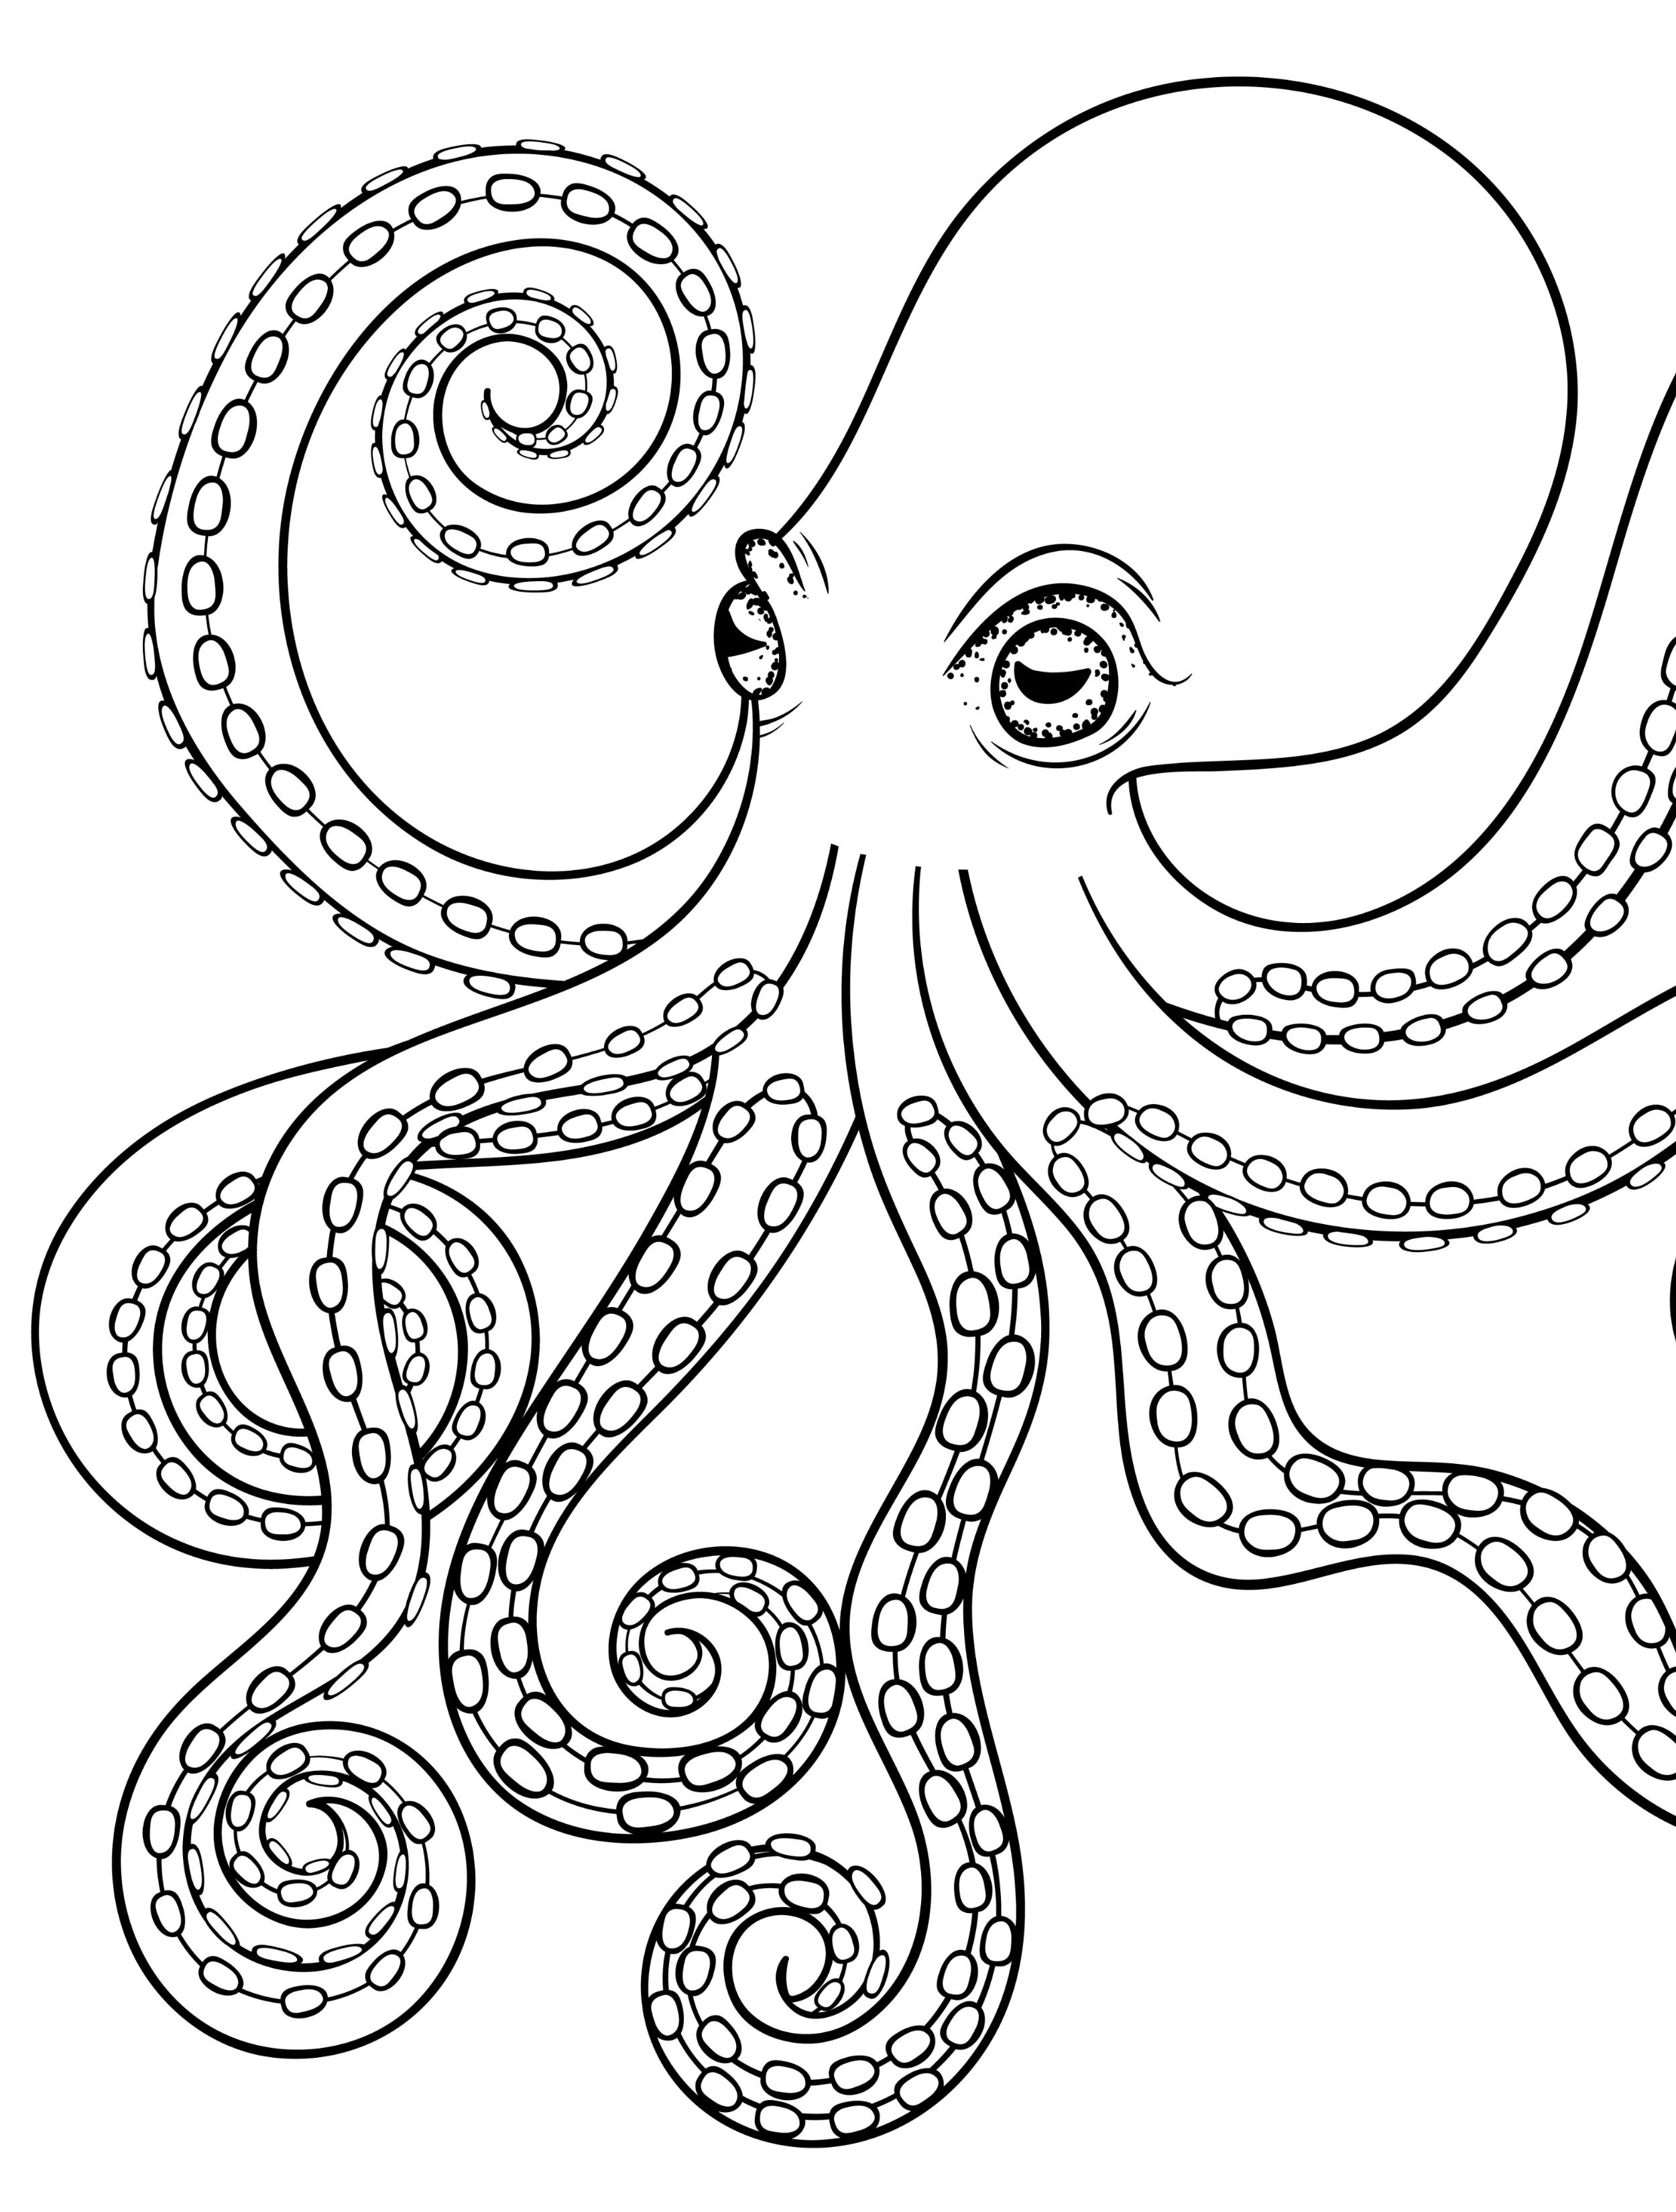 free octopus coloring pages coloring pages of octopus for preschoolers coloring home coloring octopus pages free